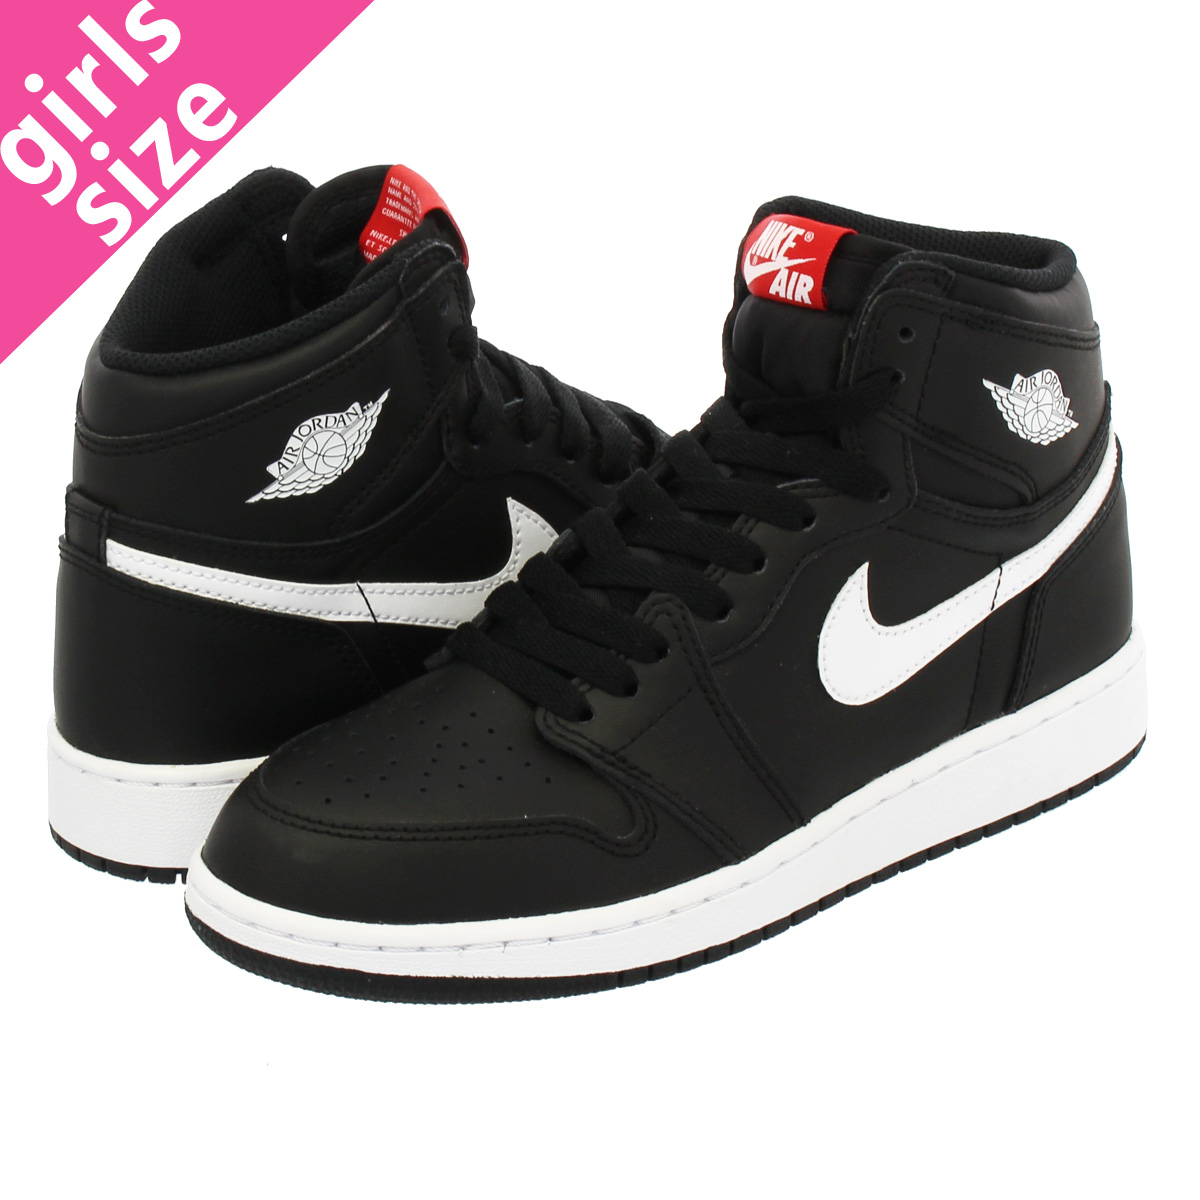 ff07694f0c24 SELECT SHOP LOWTEX  NIKE AIR JORDAN 1 RETRO HIGH OG GS BLACK WHITE ...